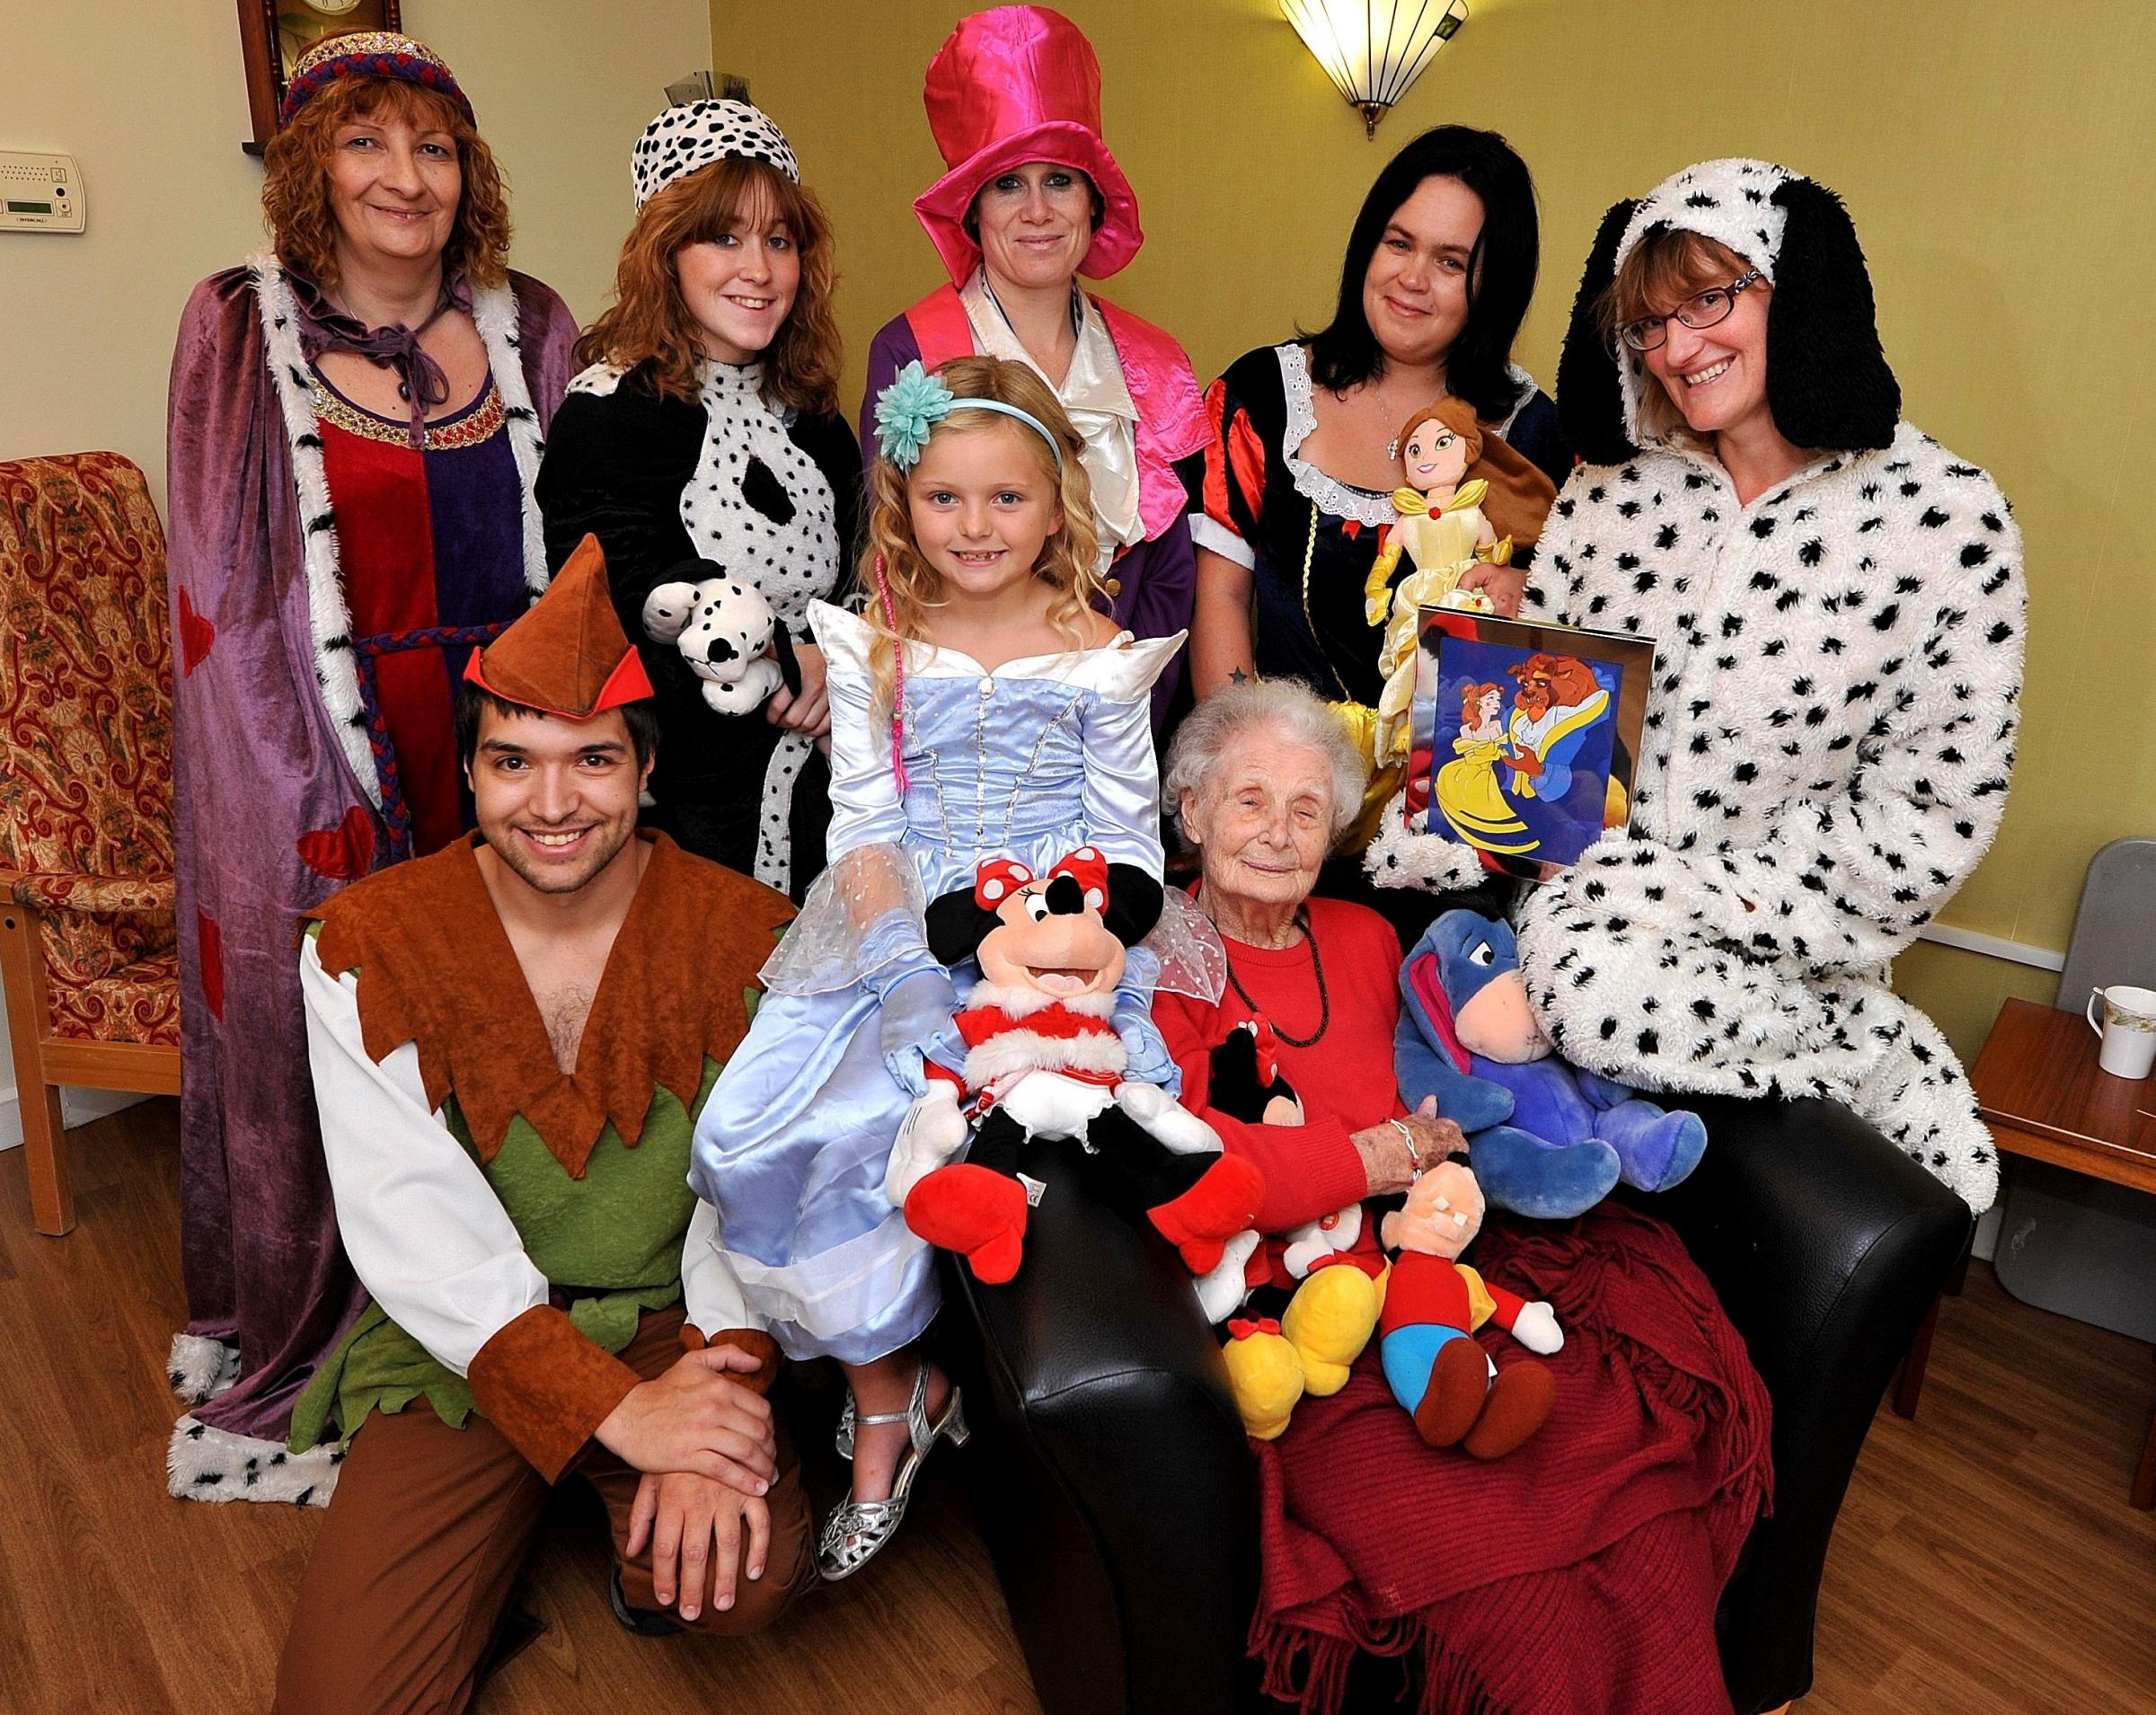 It's Disney time at Malvern care home